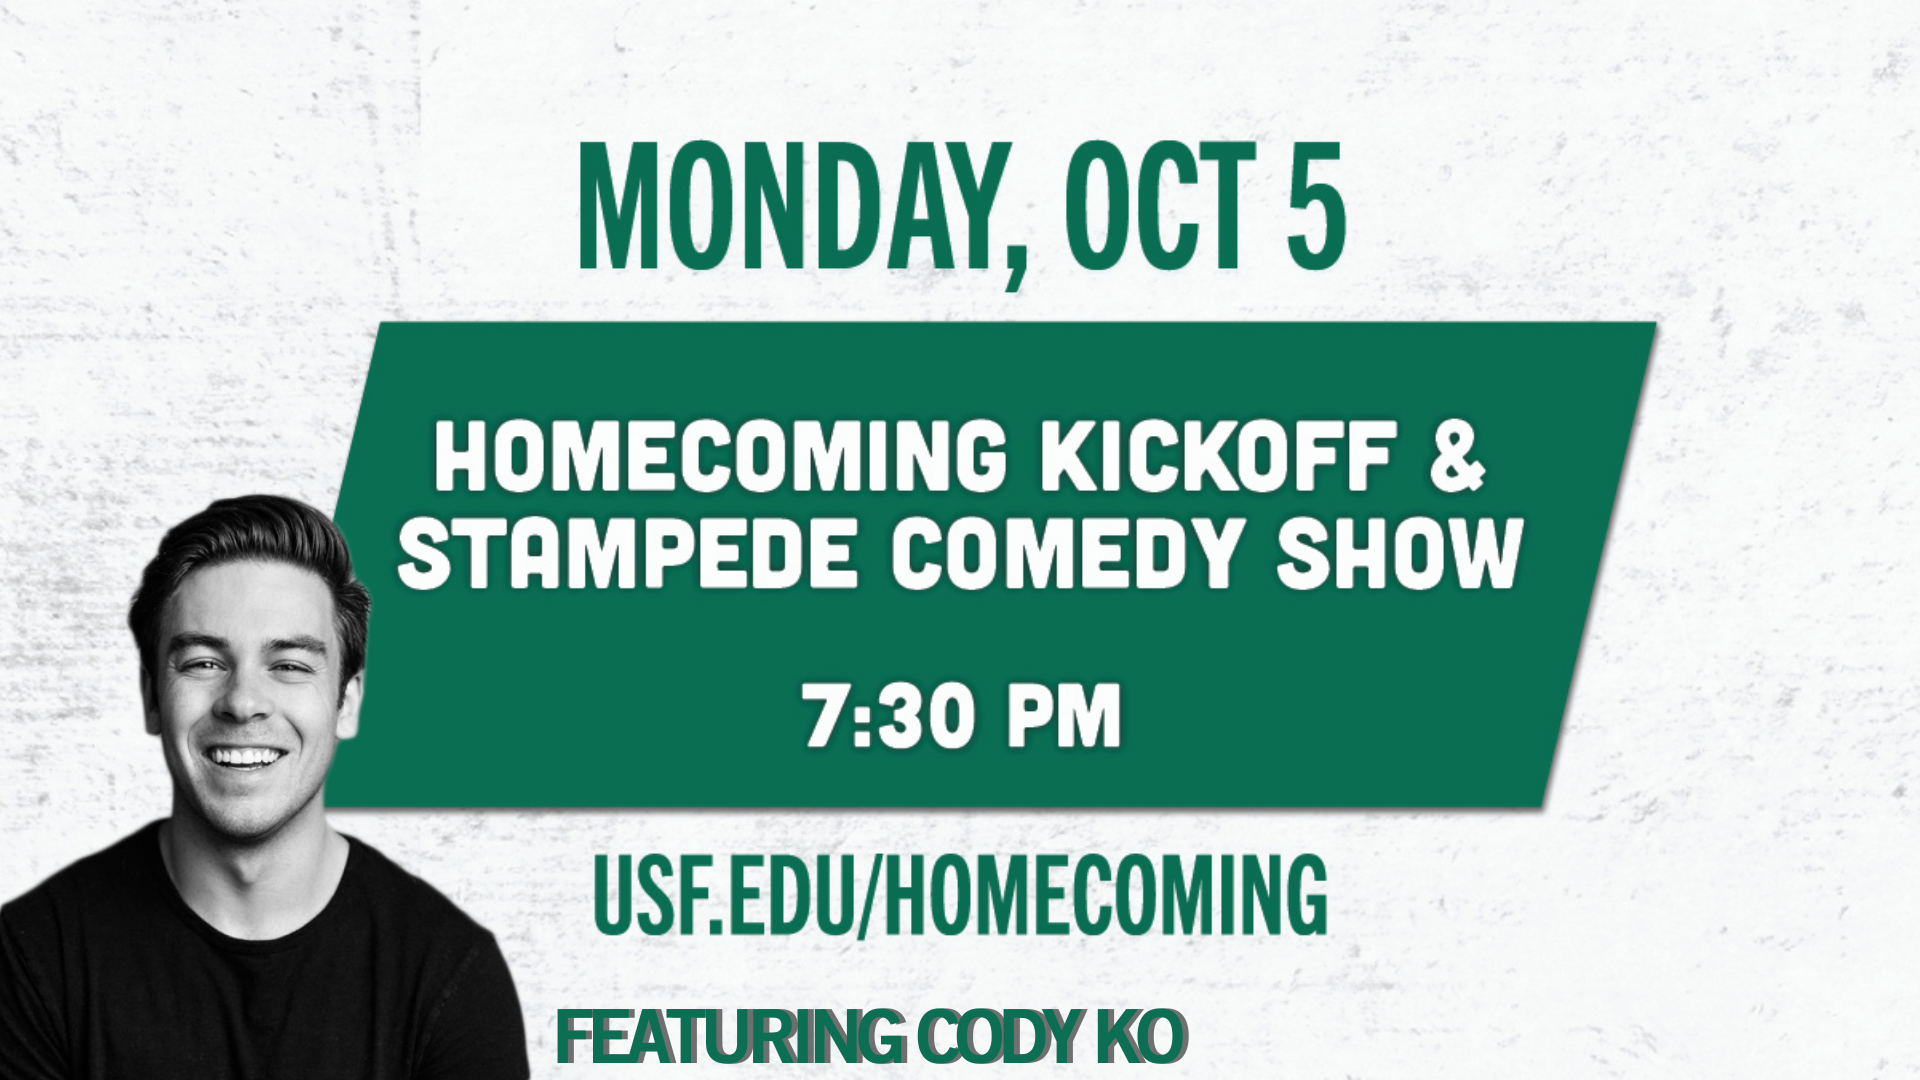 Kickoff & Comedy Show